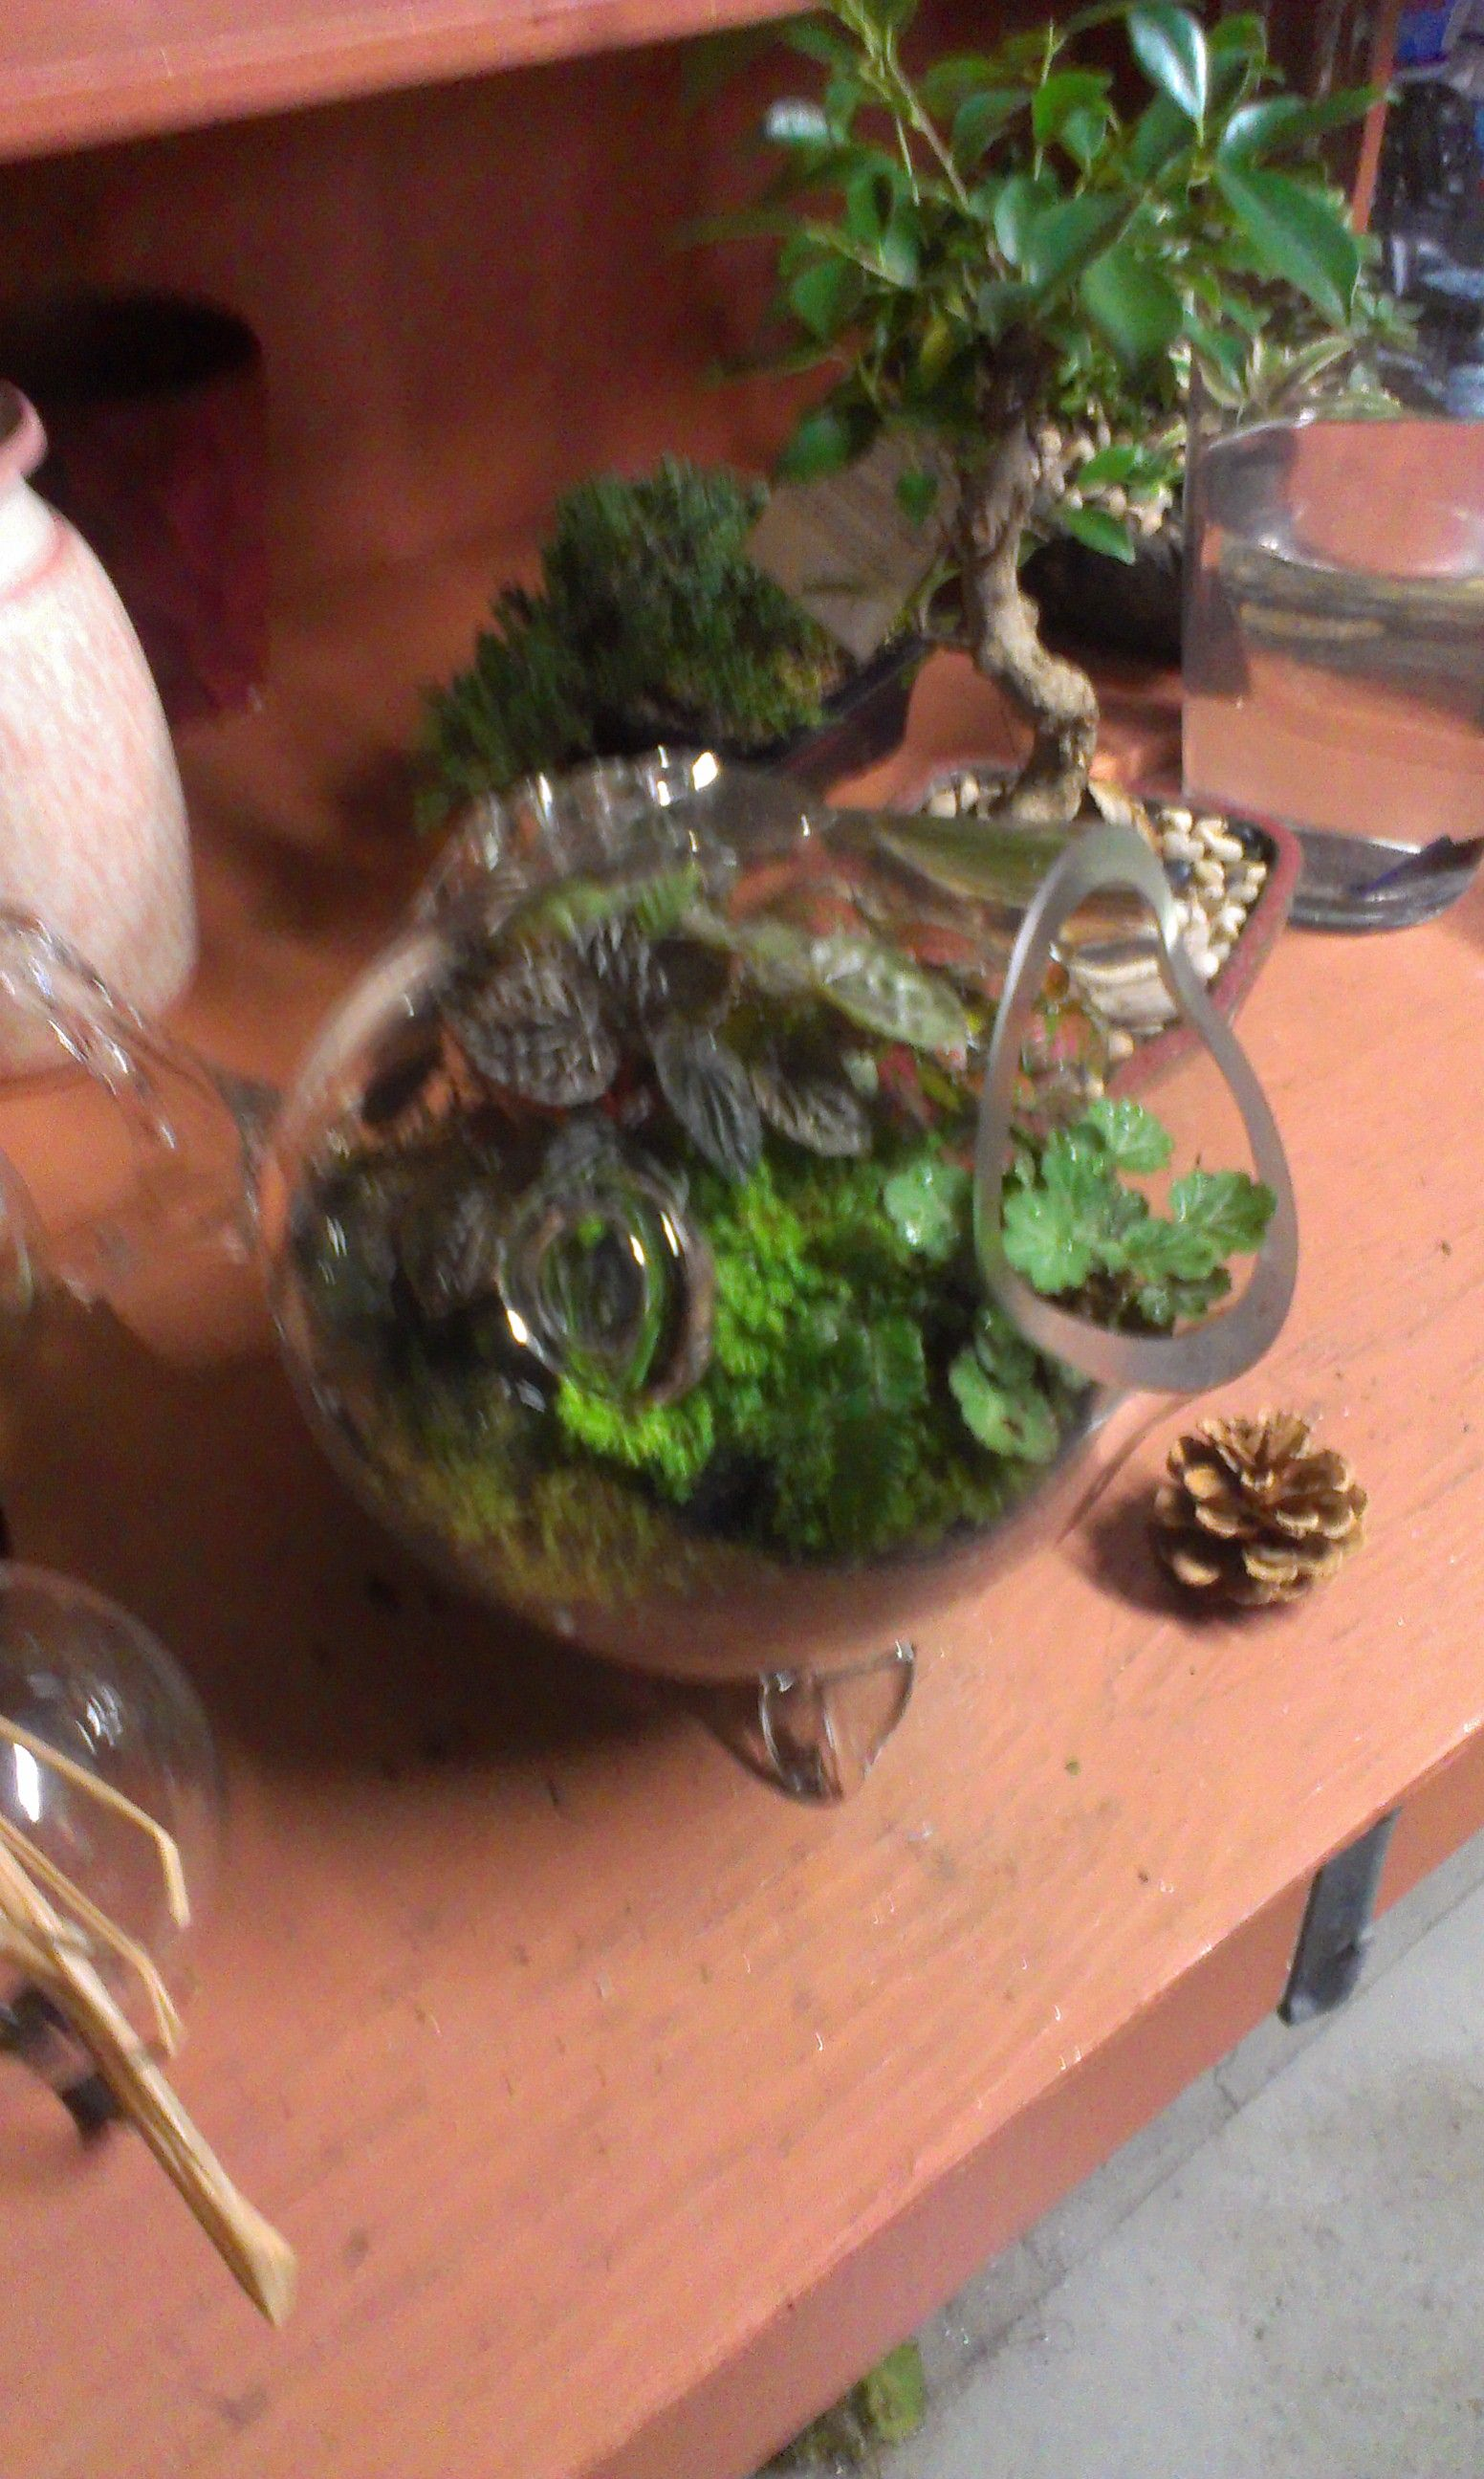 Here is one of Michaels signiture glass fish vases.  Yes, you may have seen them out there but NOT like you're seeing them here!  These plants were carefully selected for color and size and planted in a way that allows all the color to be viewed from any angle.  The mosses are hand cultivated by Michael himself and remember when watering: mist the soil with rainwater!  Yes, rainwater.